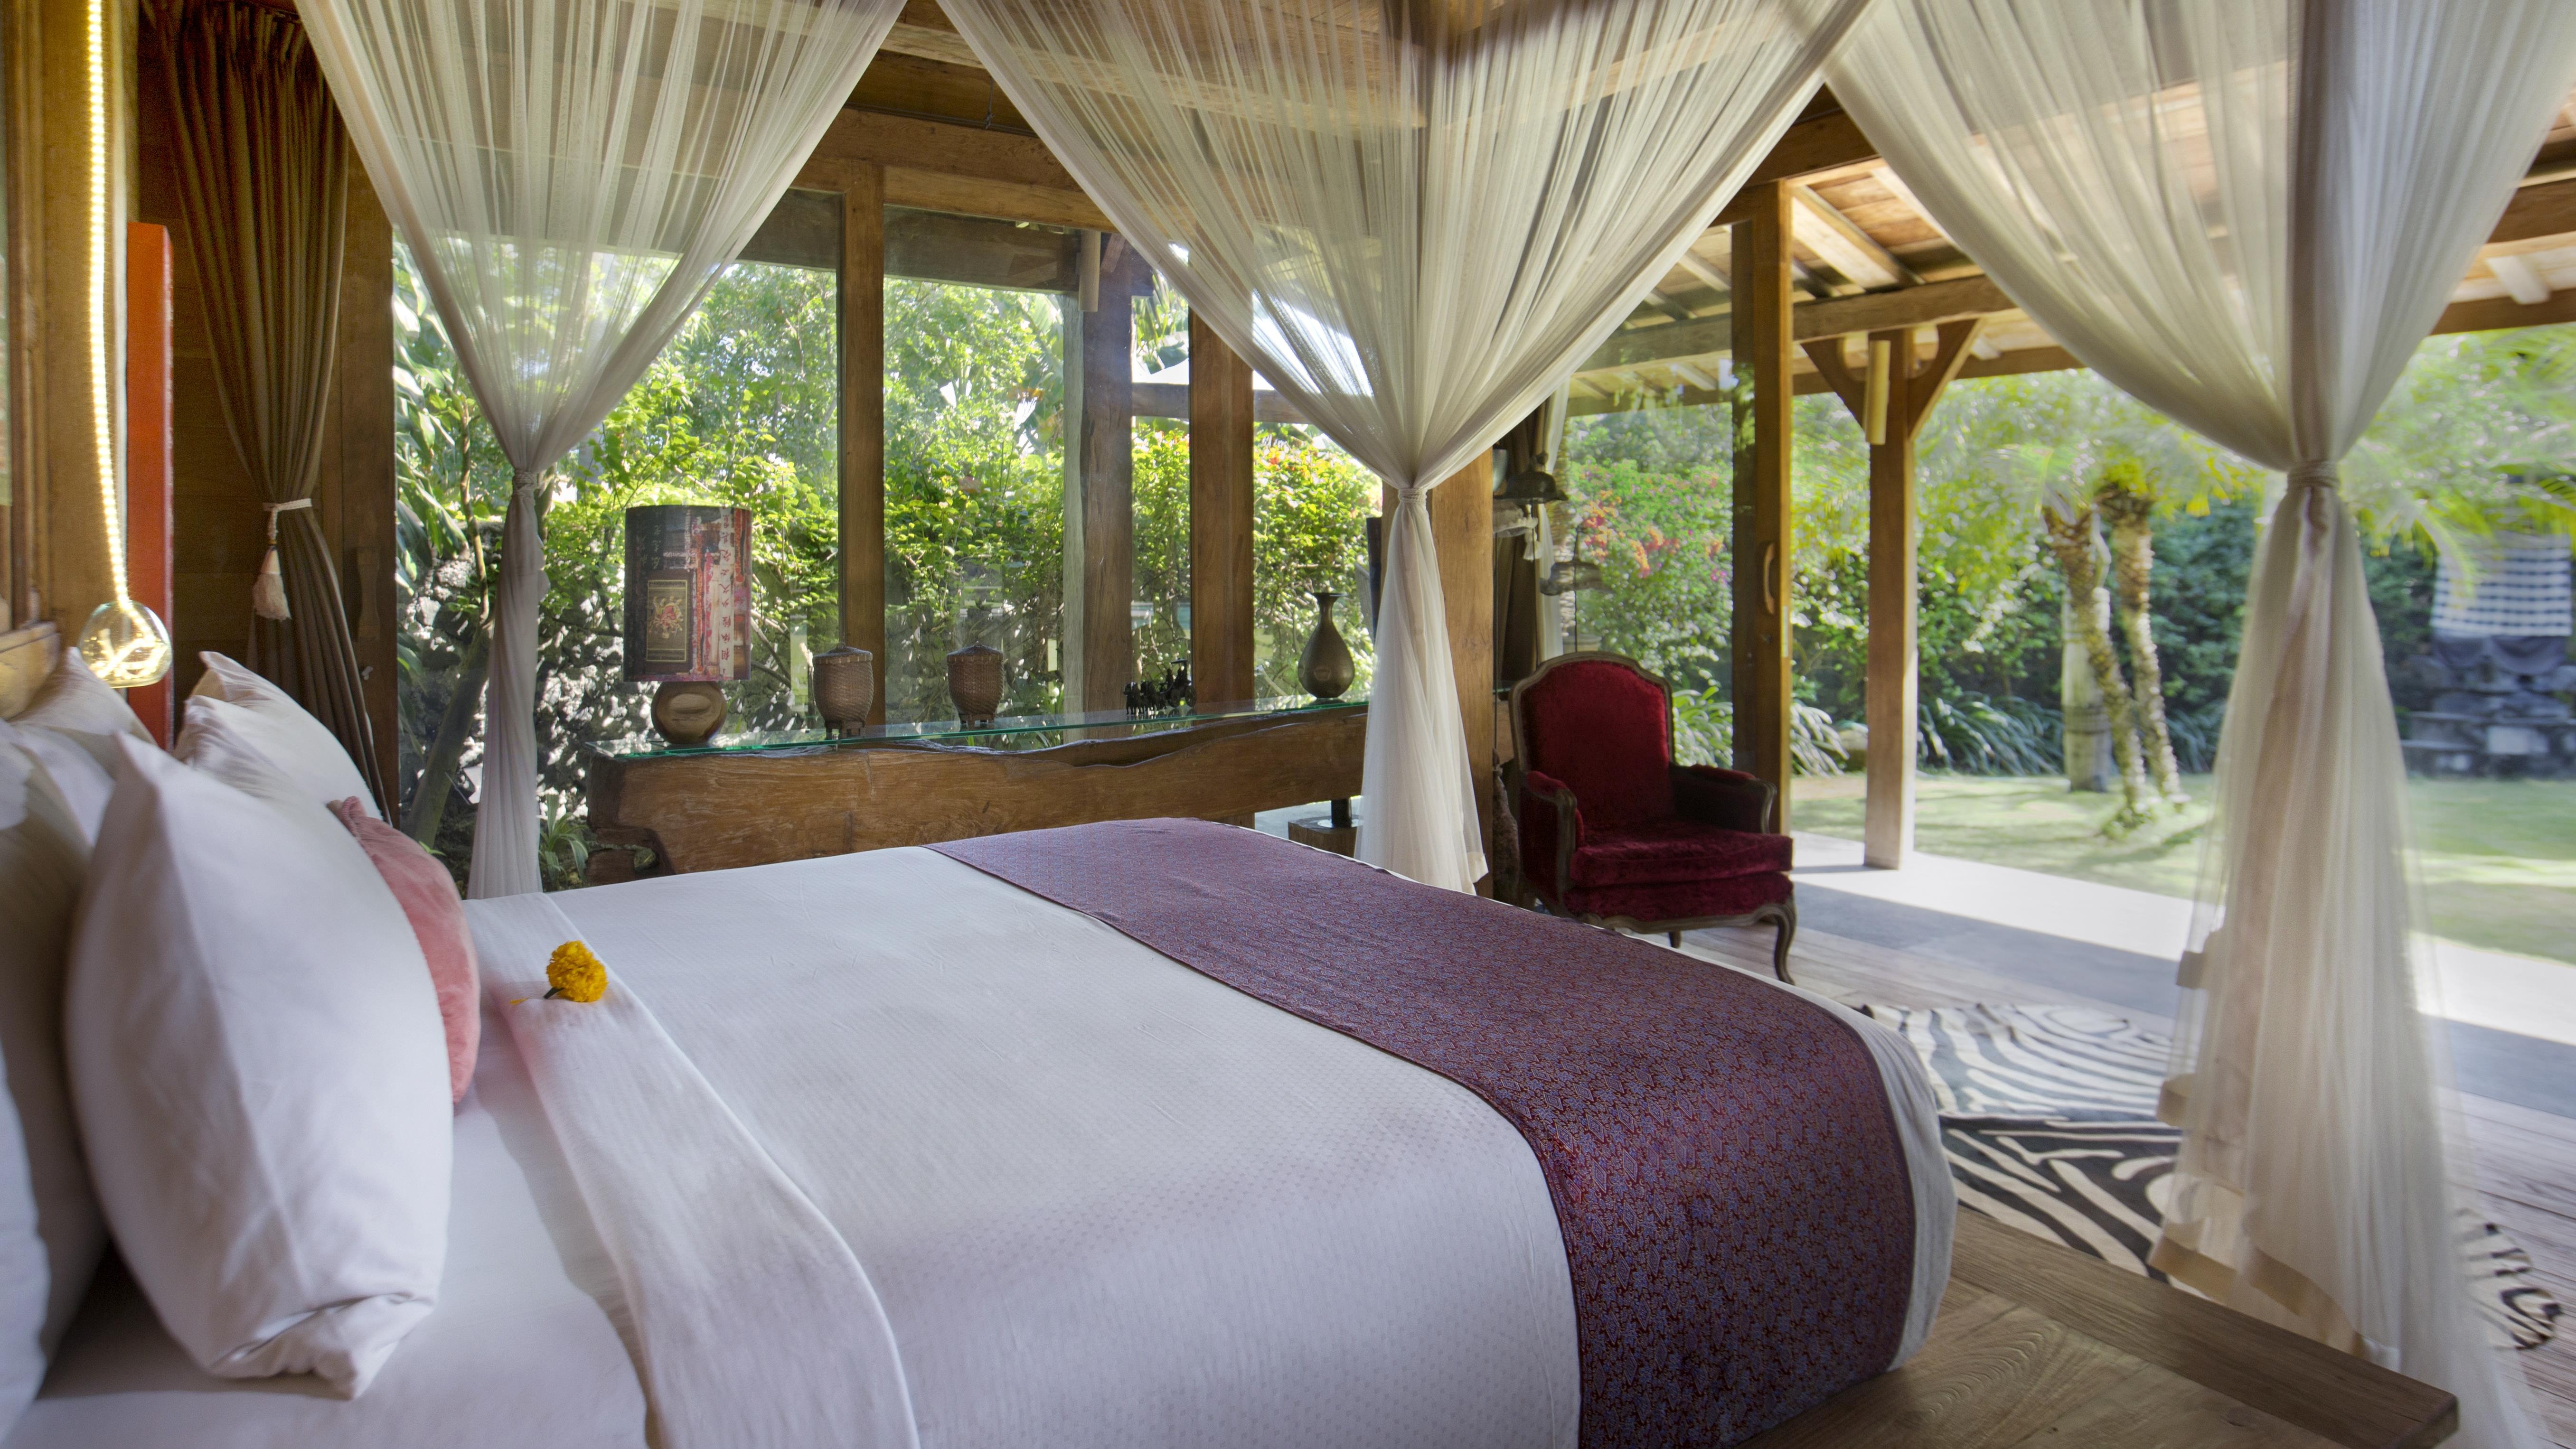 Bedroom with View - Villa Kalua - Umalas, Bali